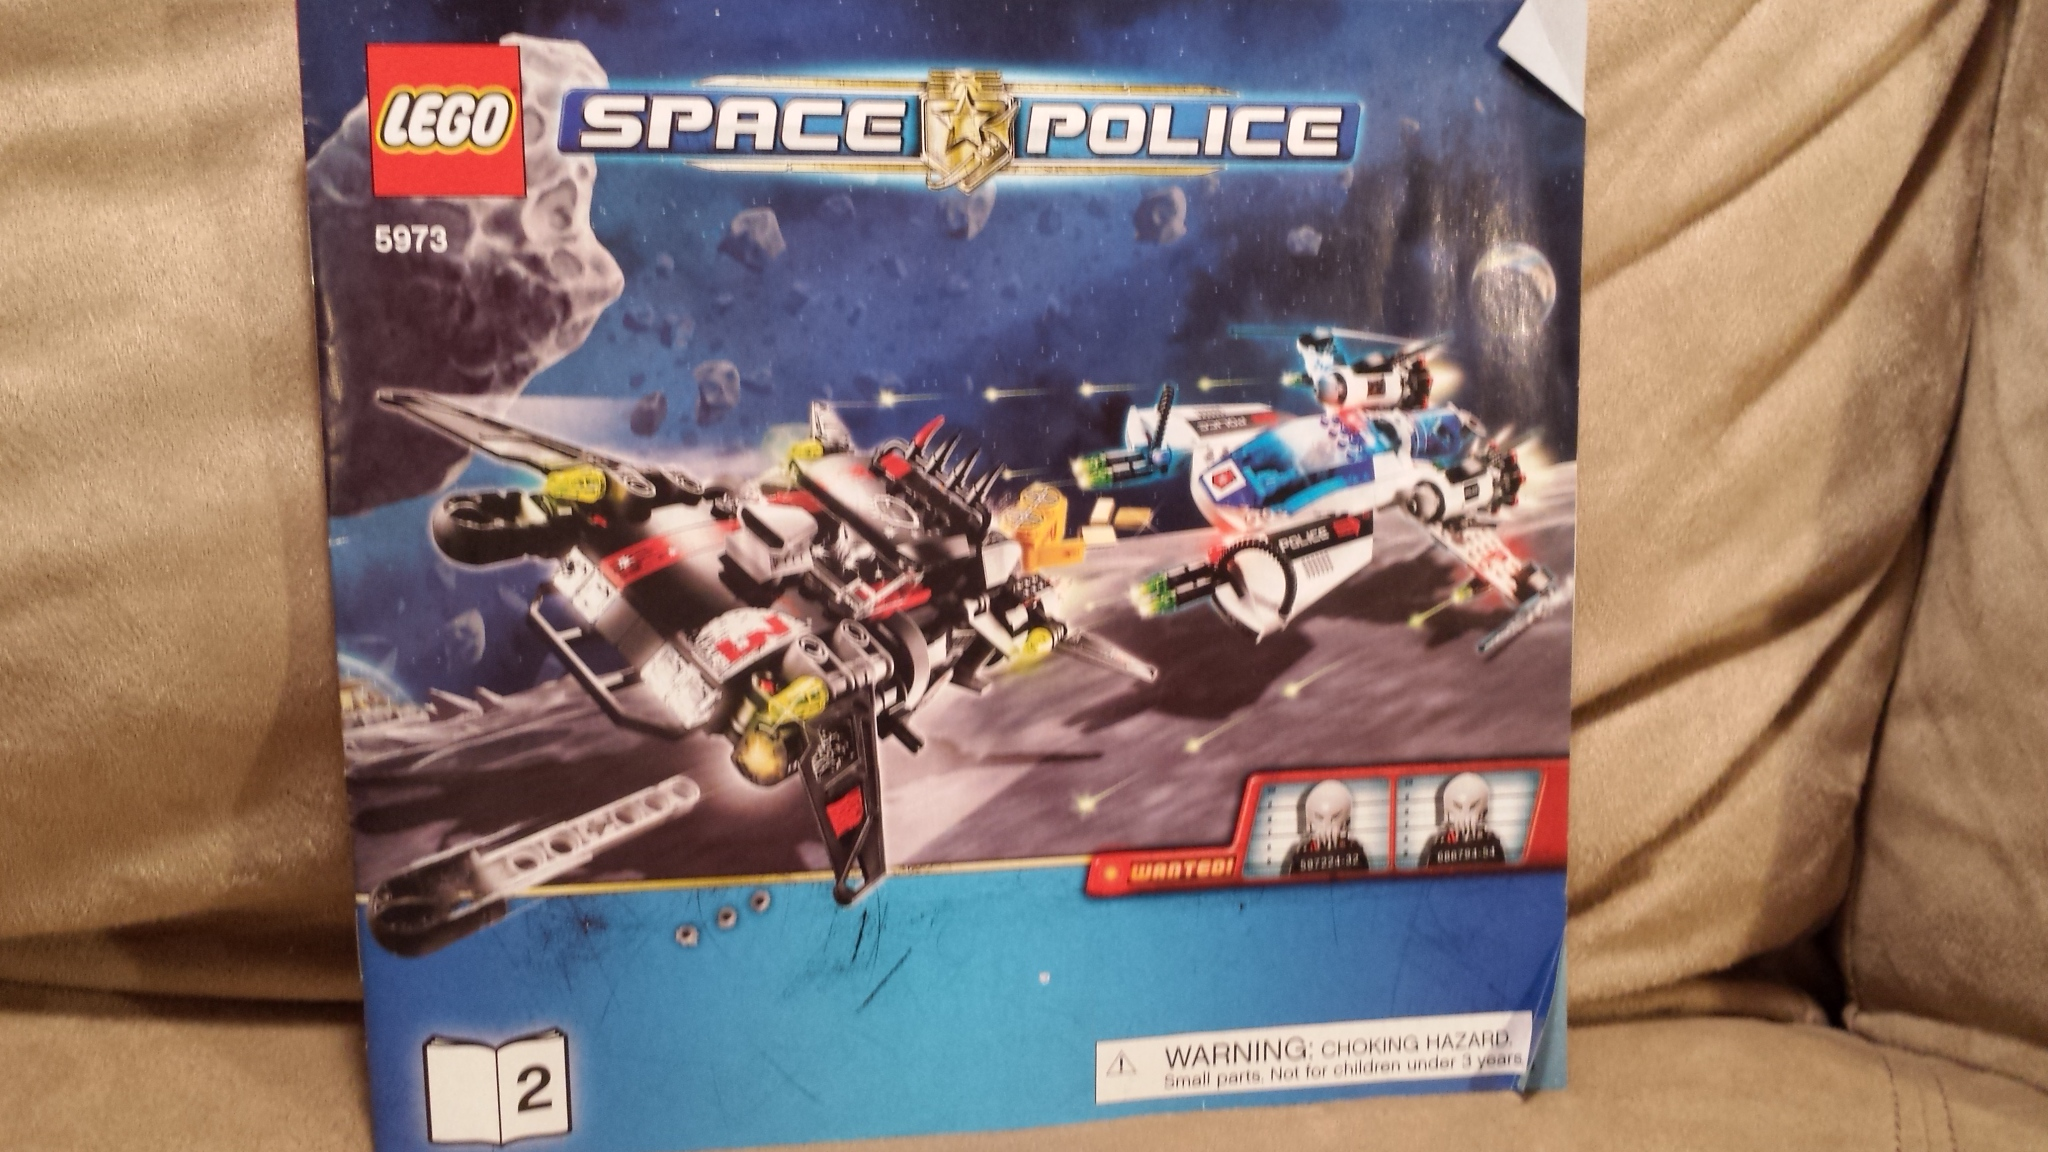 Lego 5973 Space Police Hyper Speed Pursuit Manual Instructions